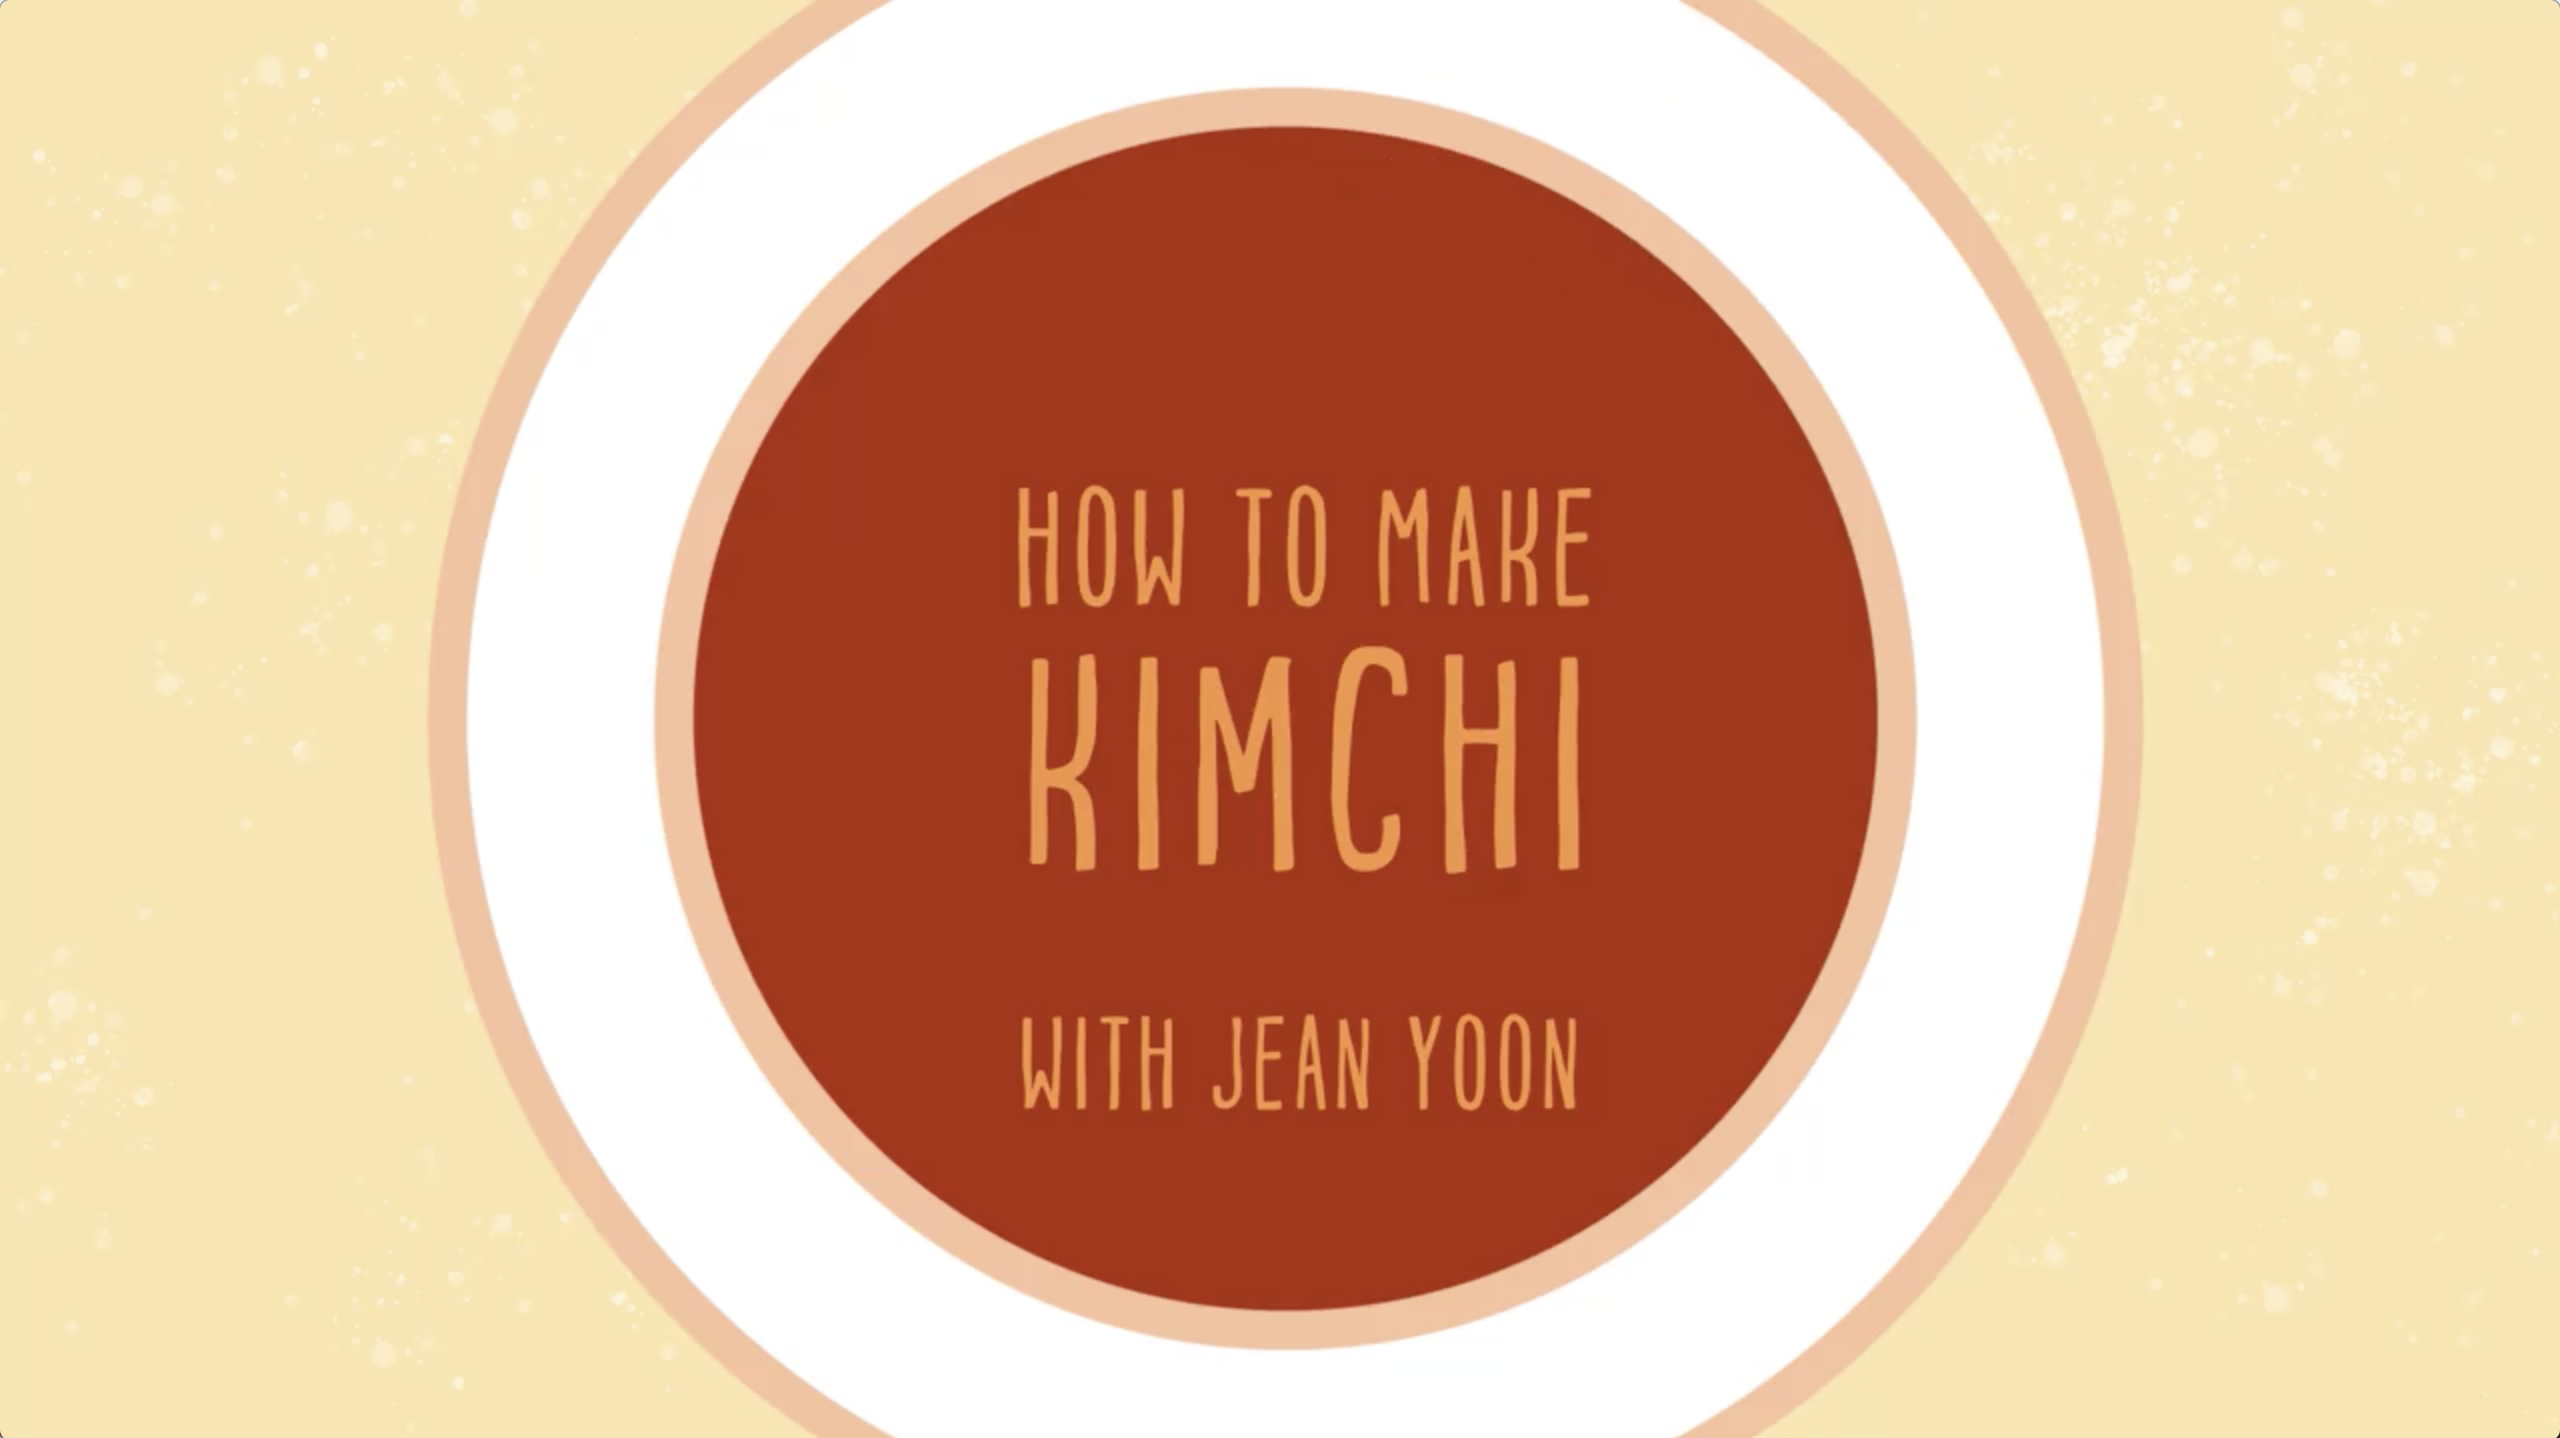 How to make Kimchi with Jean Yoon